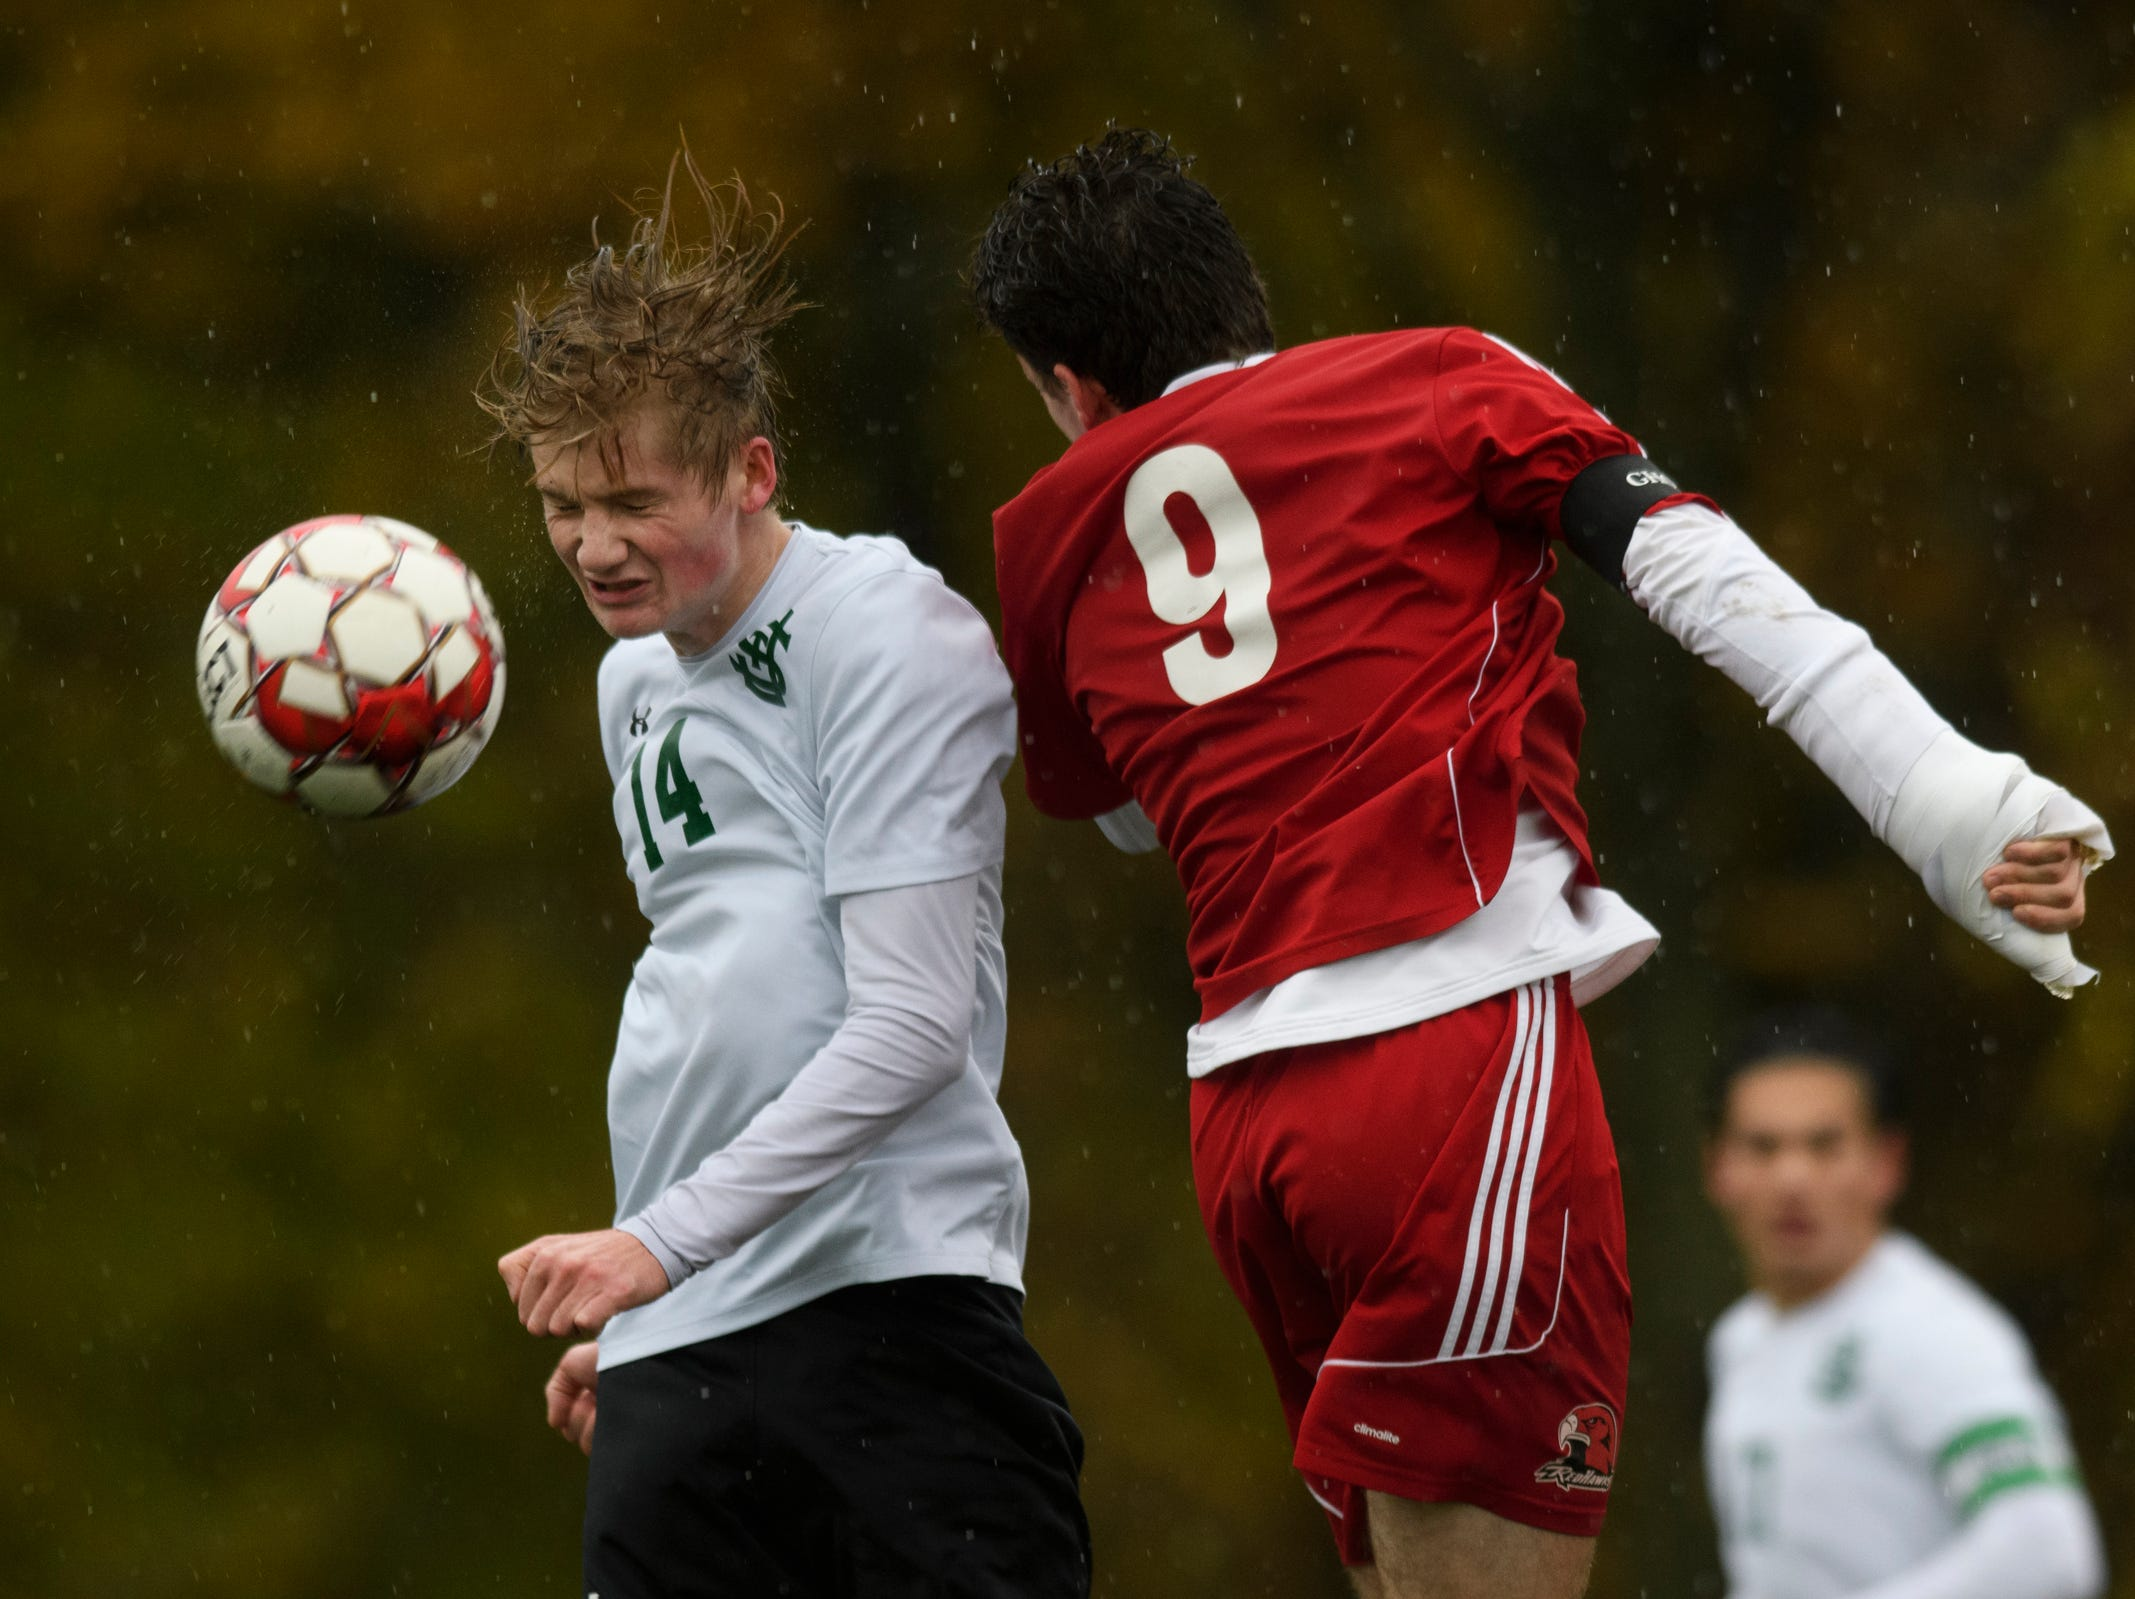 St. Johnsbury's Liam Tobin (14) and CVU's Jonah Roberts (9) battle to head the ball during the Division I boys soccer championship game between the St. Johnsbury Hilltoppers and the Champlain Valley Union Redhawks at Buck Hard Field on Saturday morning November 3, 2018 in Burlington.